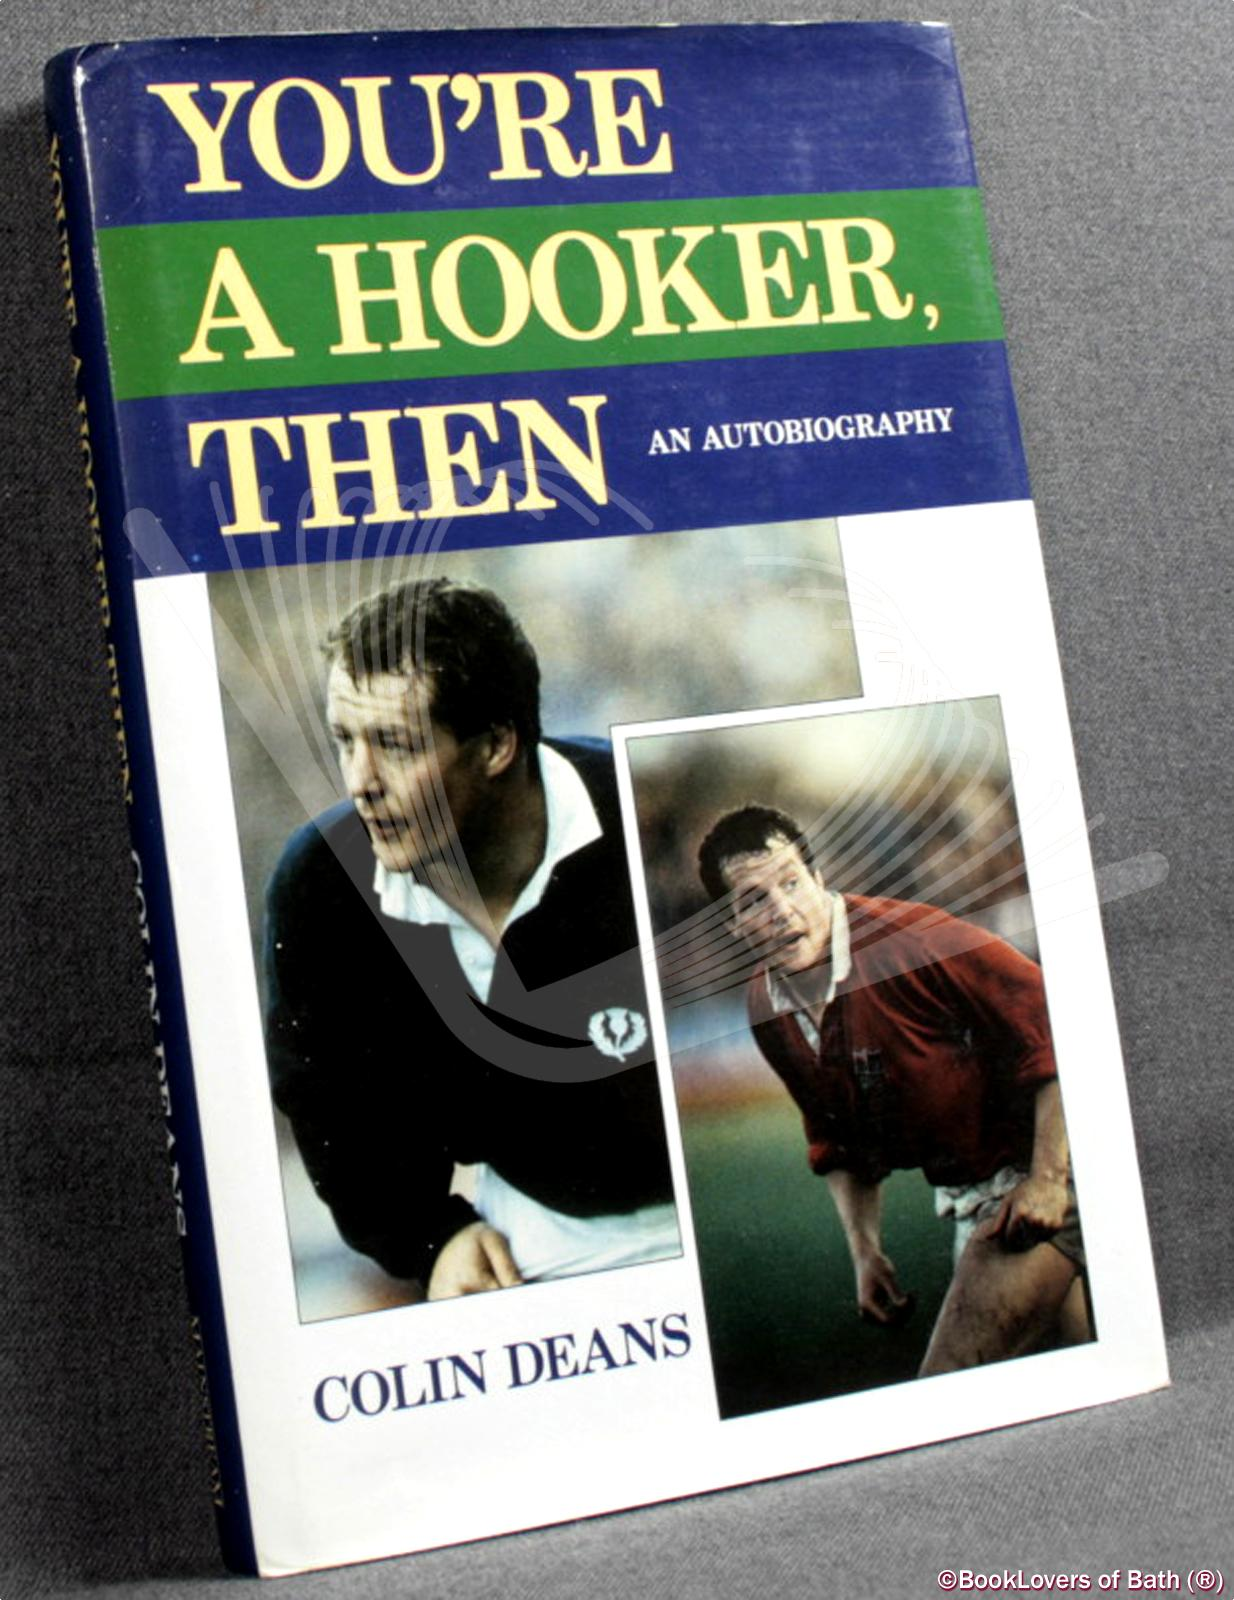 You're a Hooker Then: An Autobiography - Colin Deans